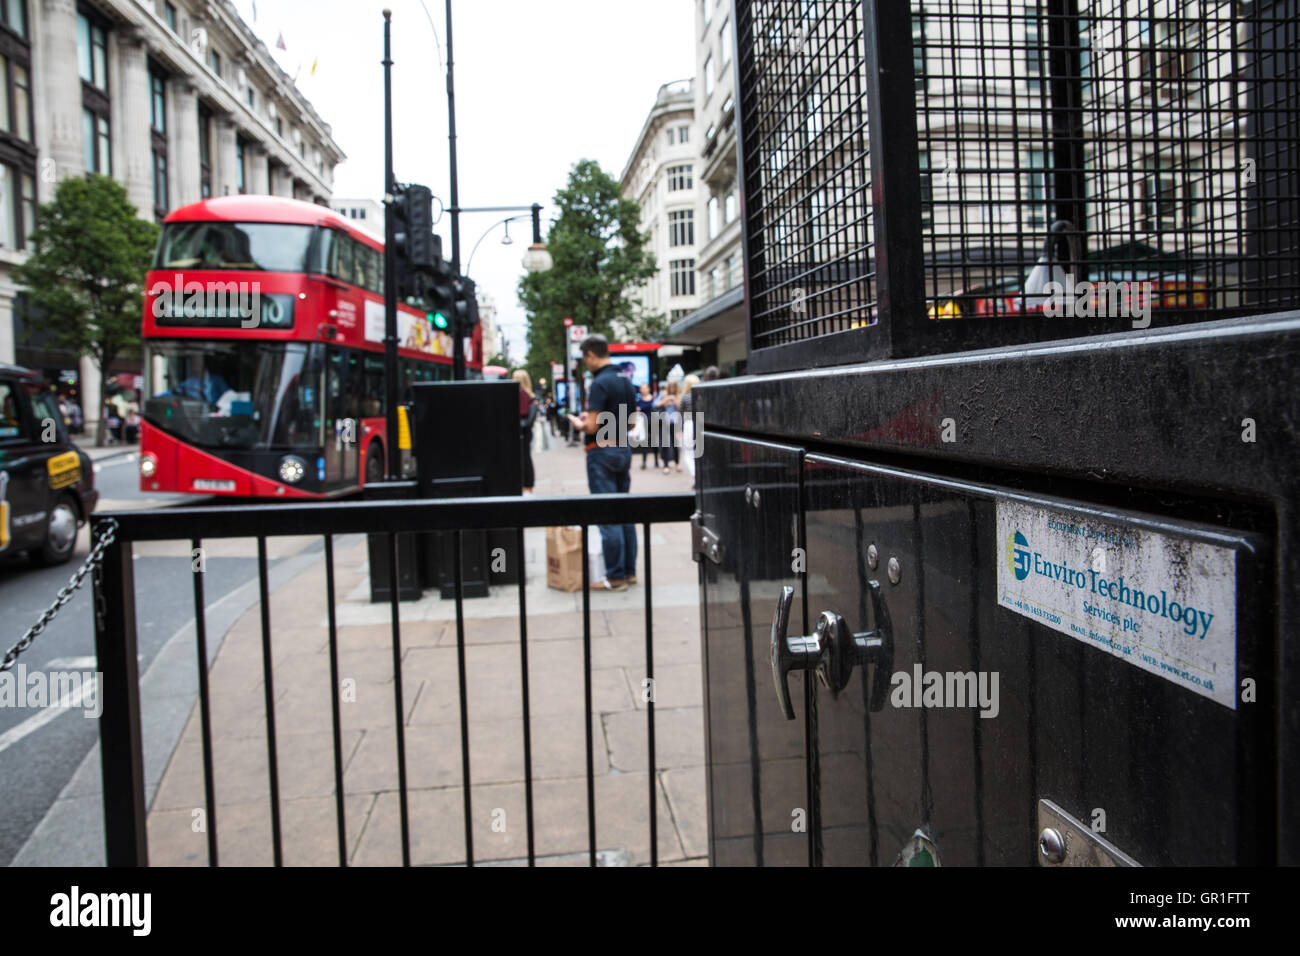 London, UK. 6th September, 2016. A double-decker bus passes an air quality monitor in Oxford Street. The London - Stock Image